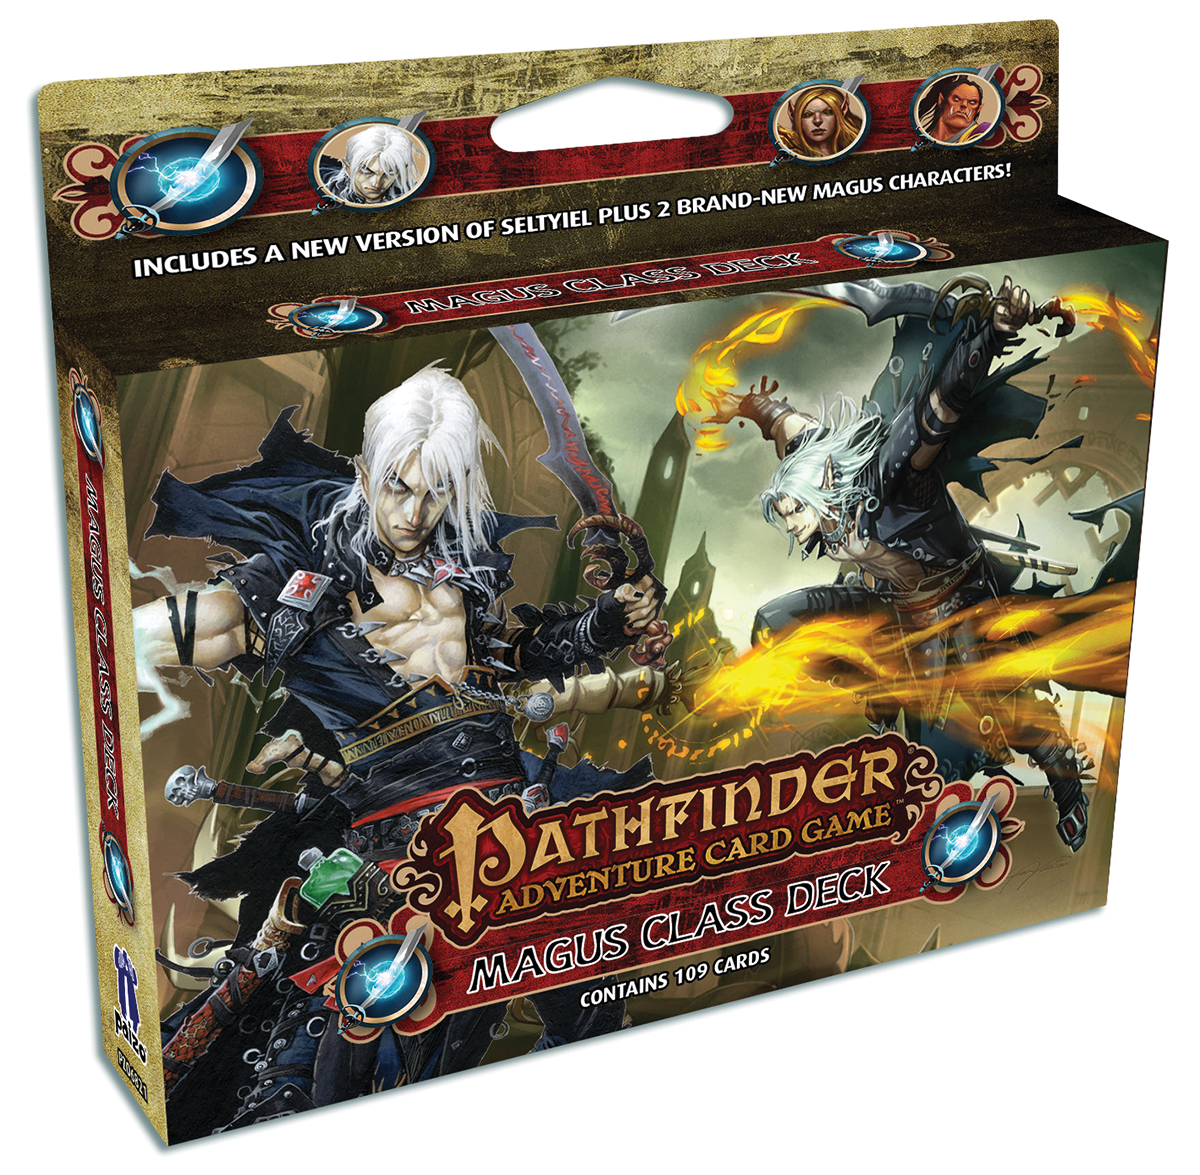 Pathfinder Adventure Card Game: Magus Class Deck Box Front